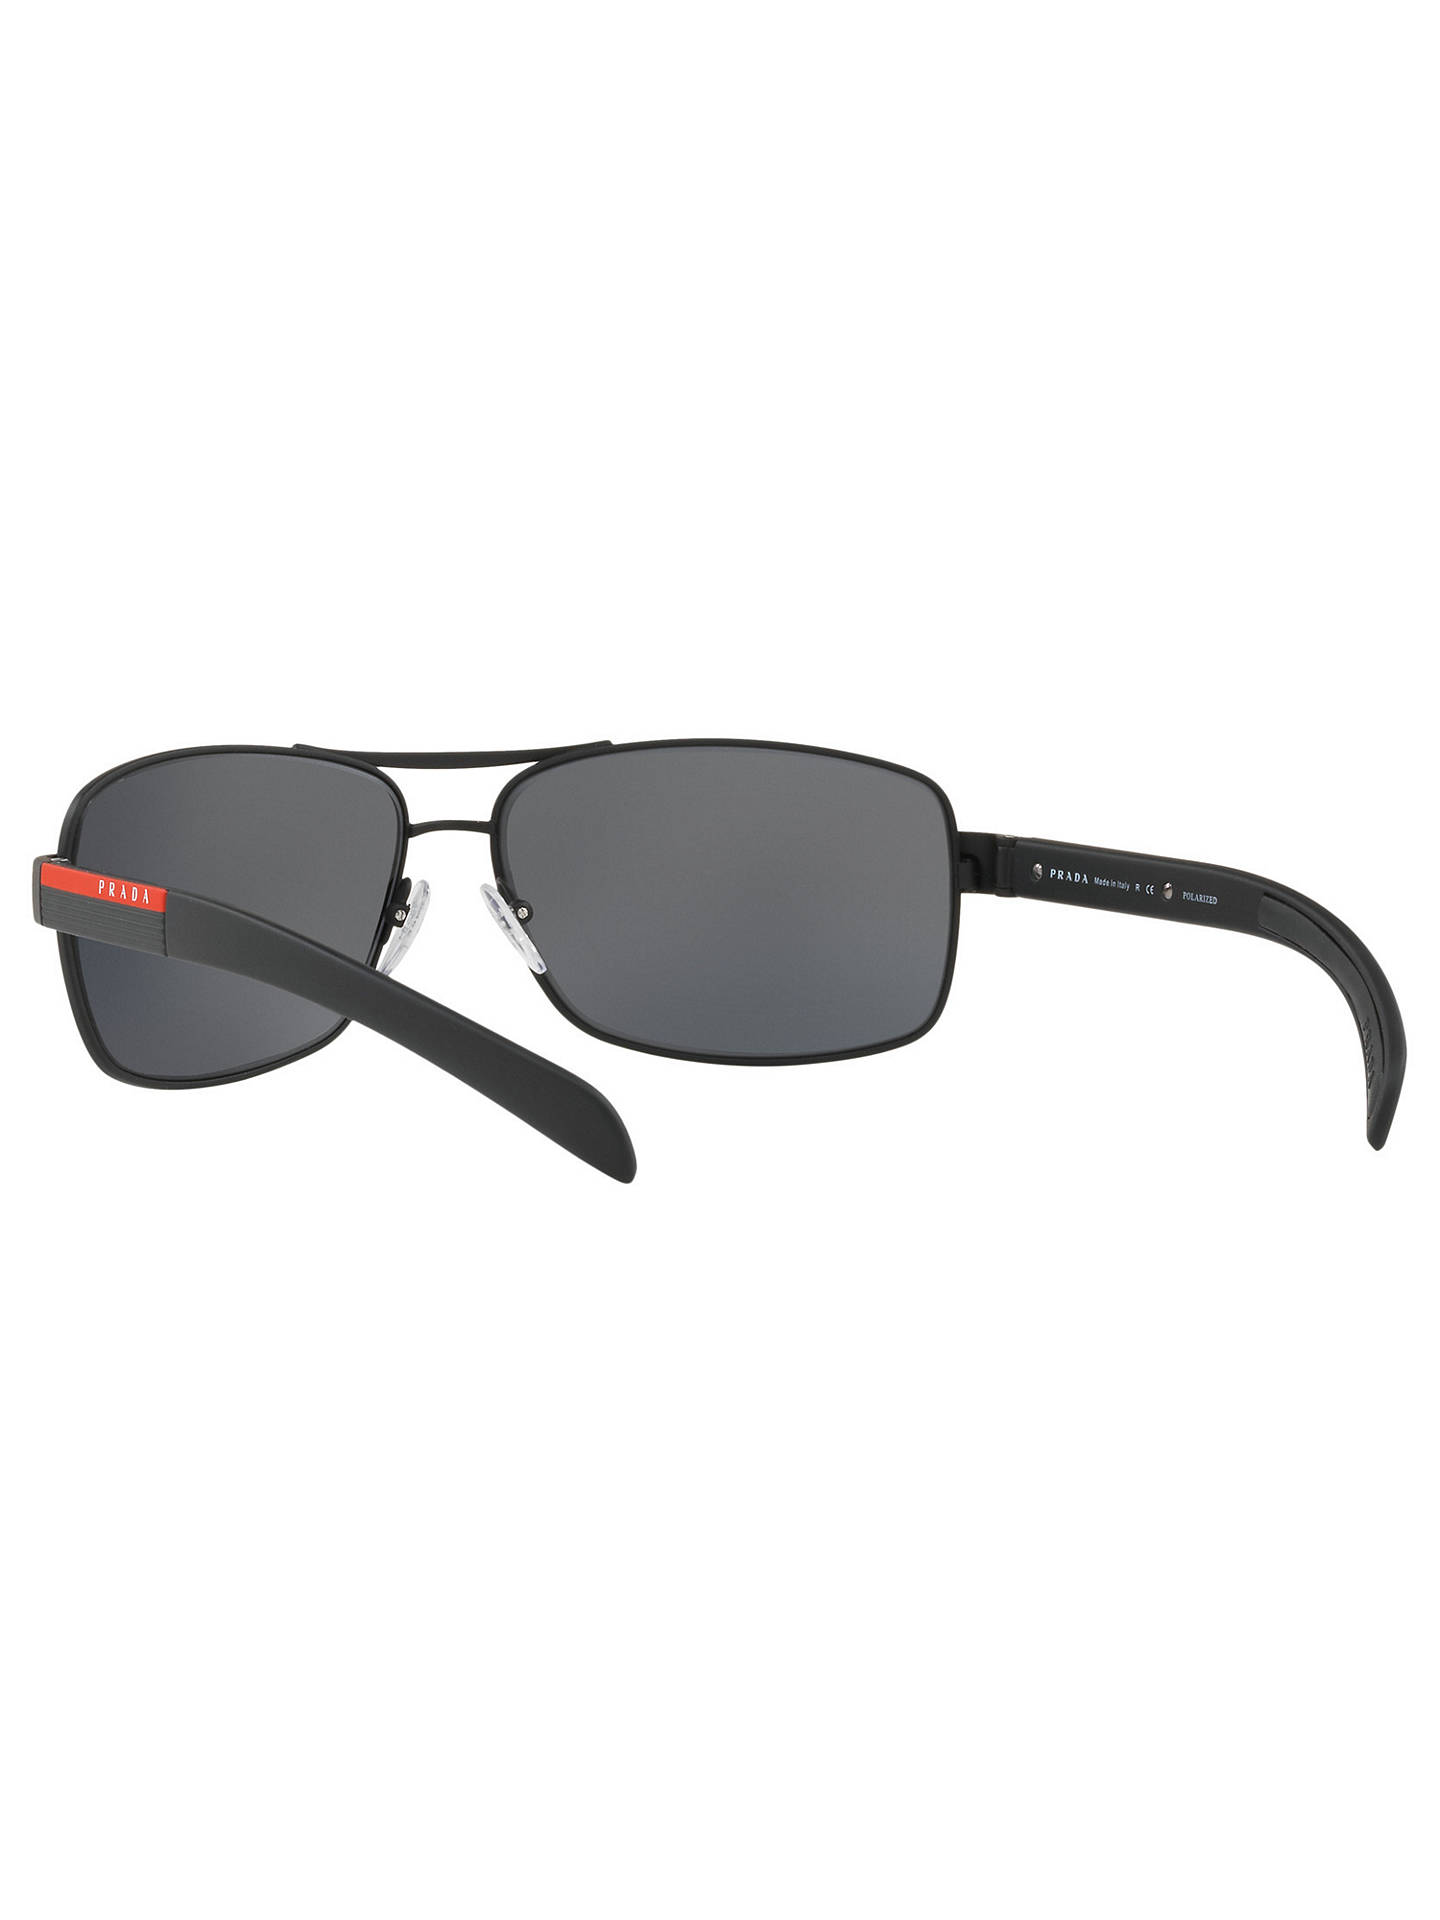 409dfddc0a8 Prada Linea Rossa PS 54IS Polarised Rectangular Sunglasses at John ...